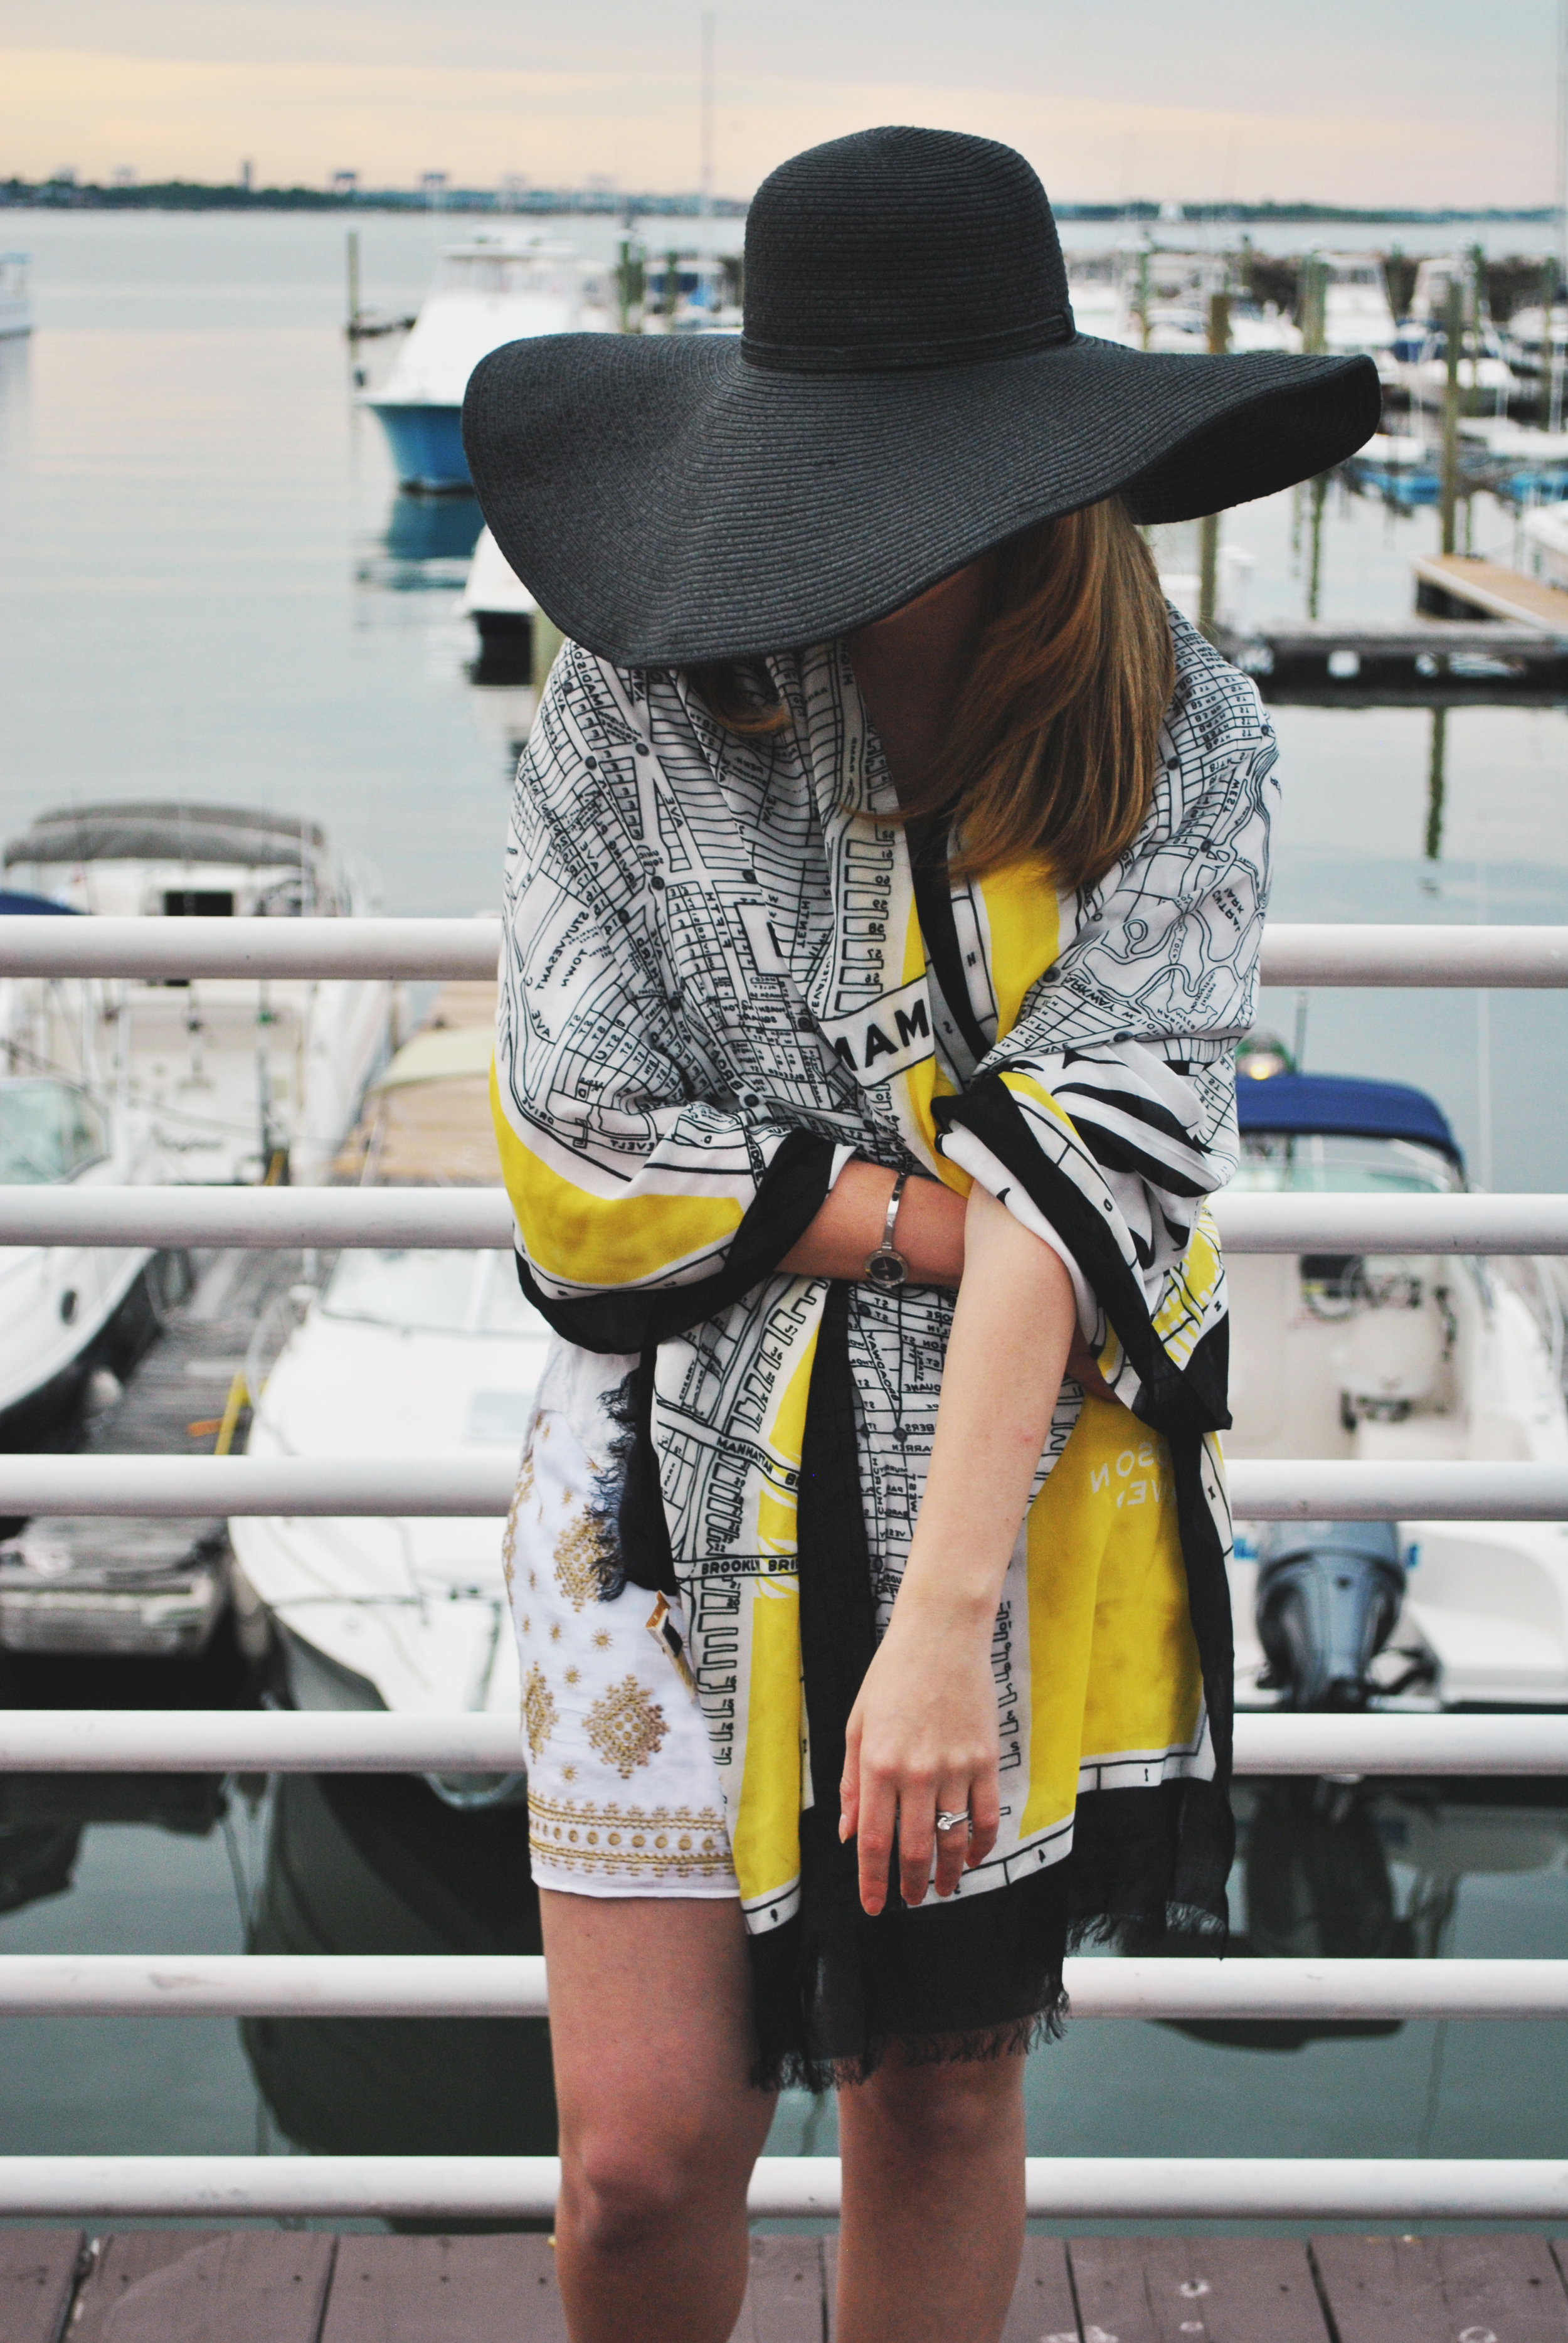 sailing outfit // summer outfit // white shorts outfit // j.crew // bloomingdale's // kate spade // big hat // thoughtfulwish